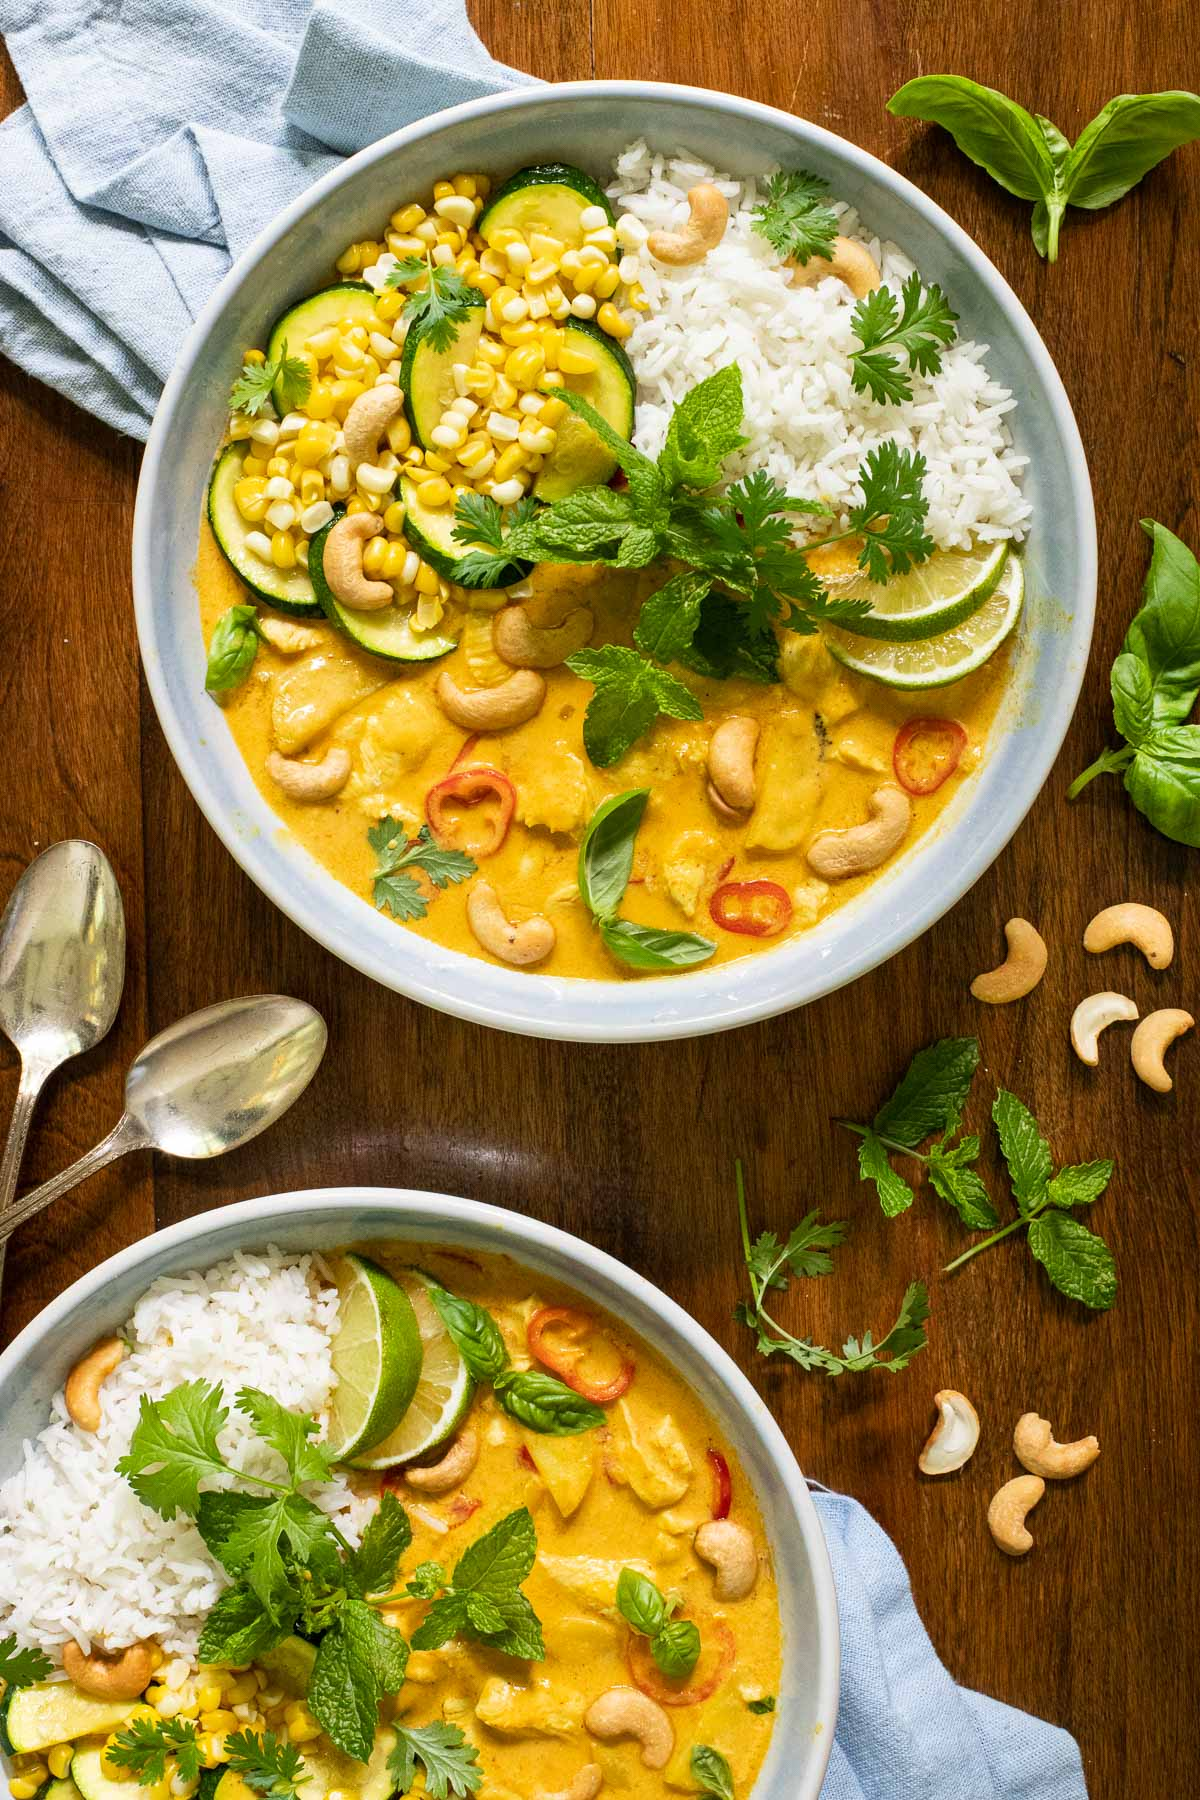 Overhead vertical photo of Summery Chicken Coconut Curry in light blue serving bowls on a wooden table.